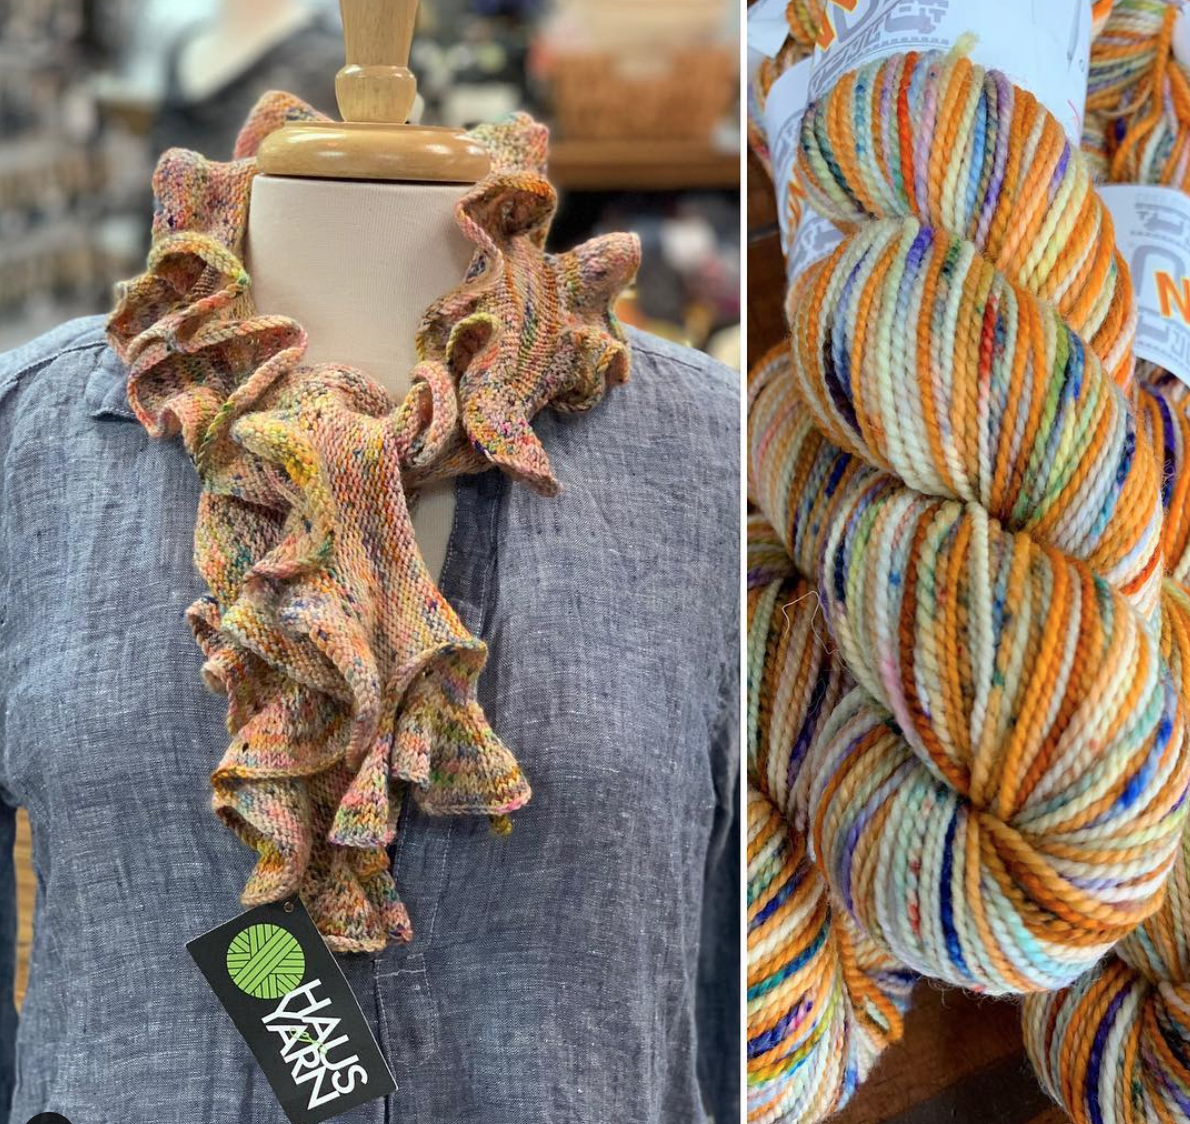 Haus of Yarn - This is last month's (February) Koigu Collector Club colour way, made into a Barb's Ruffle Scarf pattern.